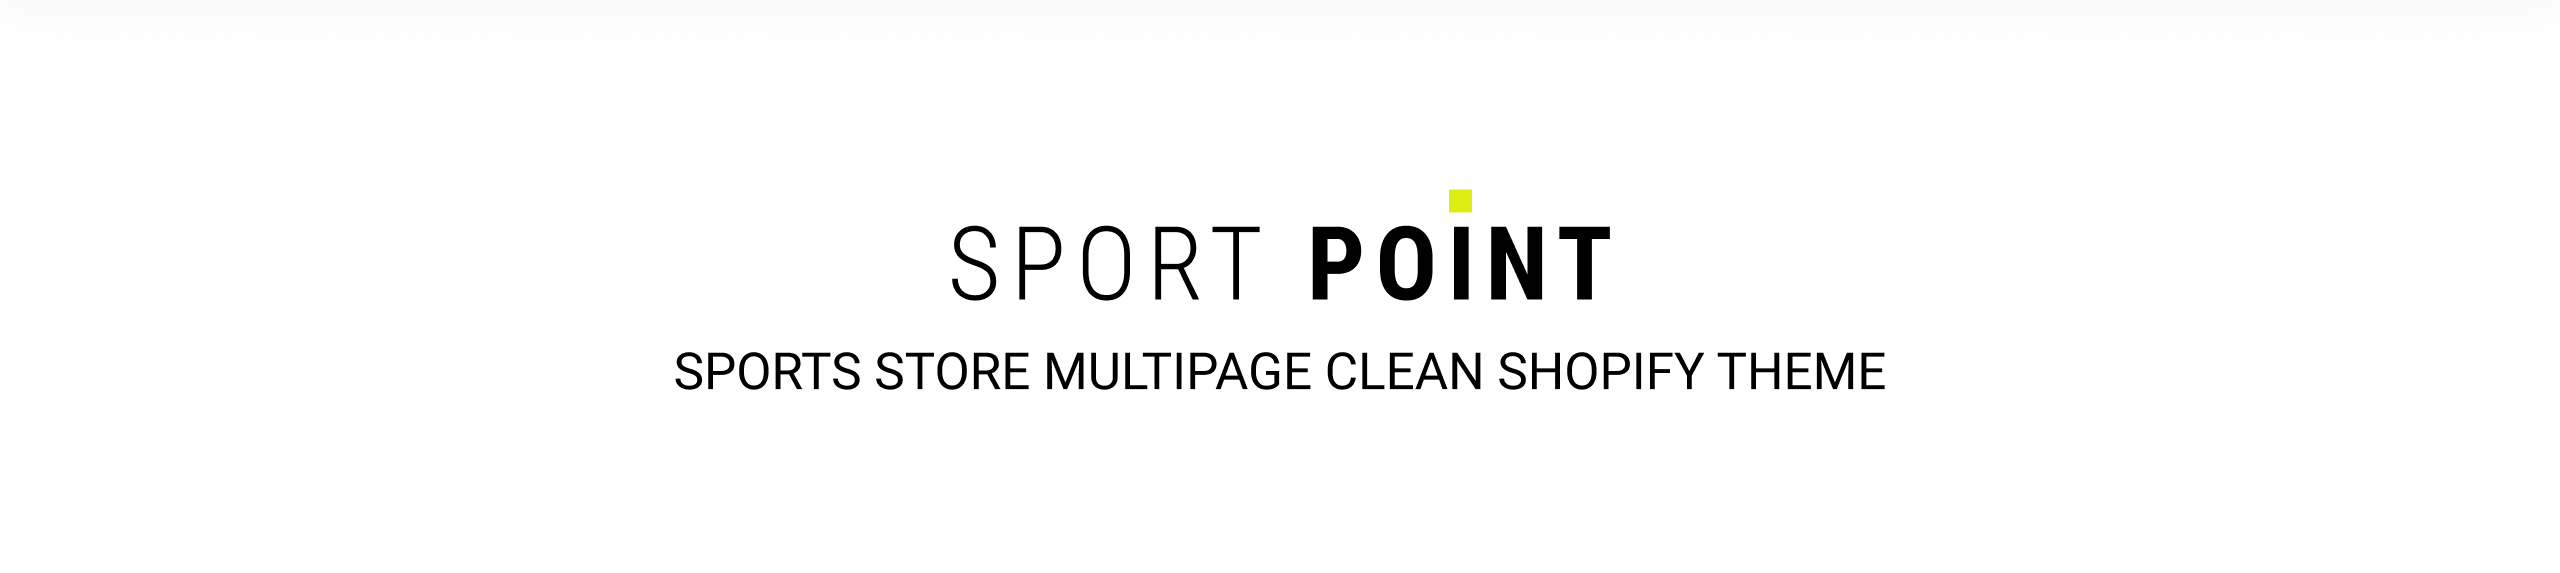 Sport Point - Sports Store Multipage Clean Shopify Theme